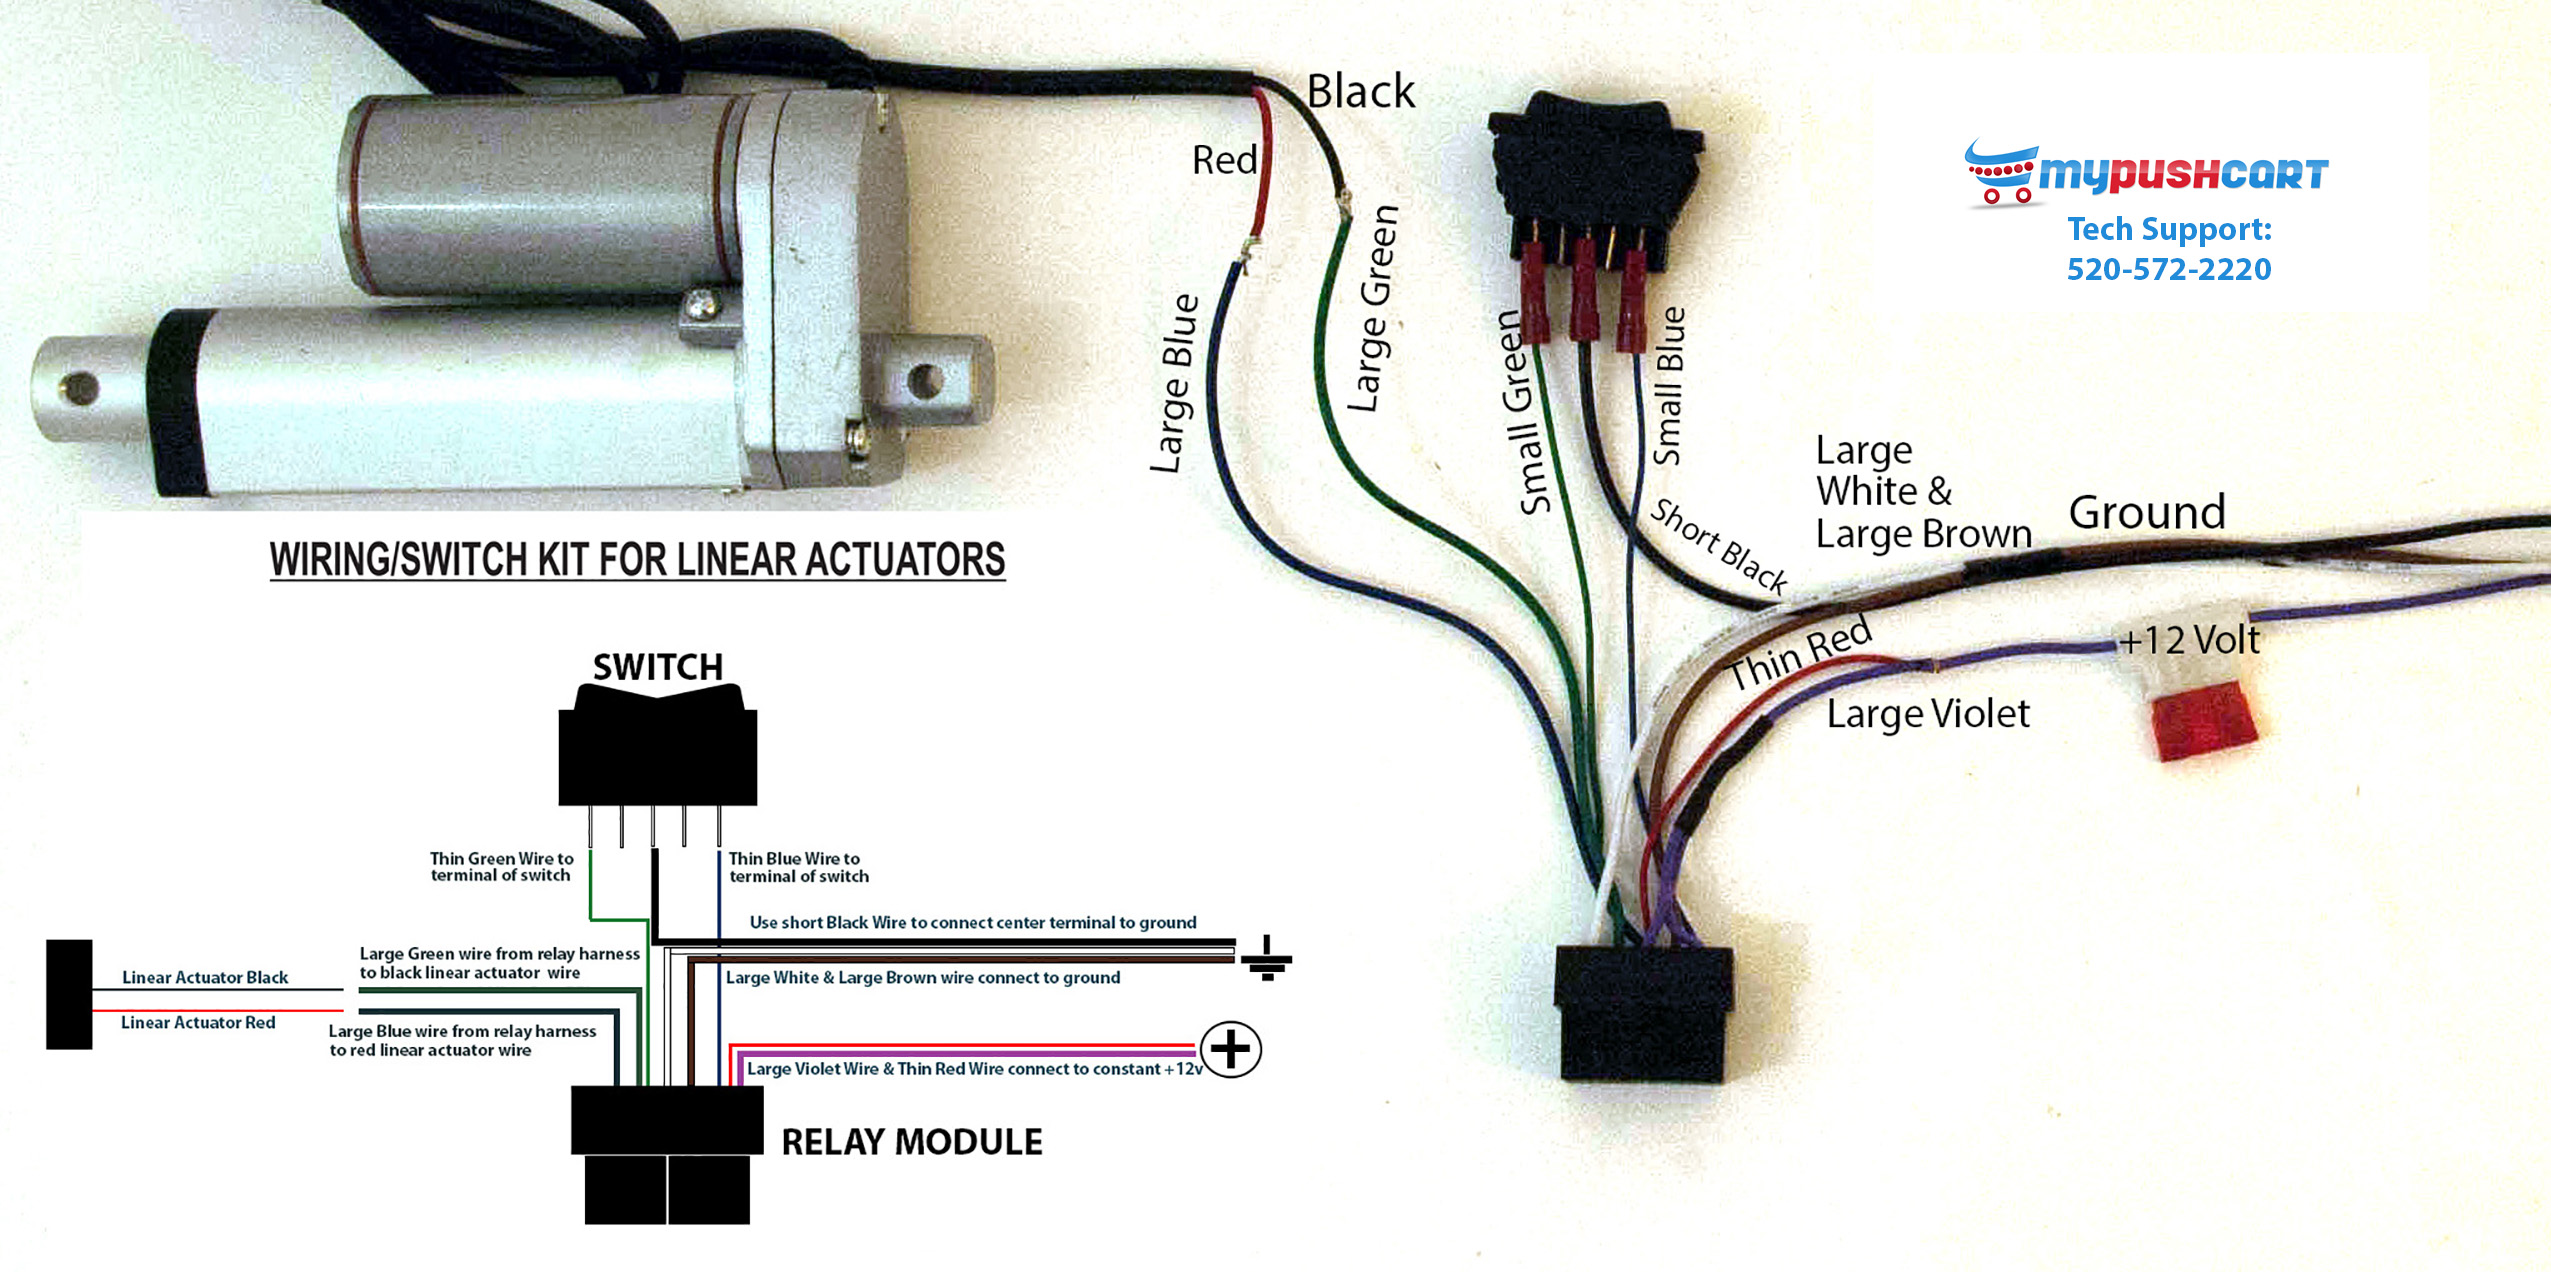 wiring switch relay kit for linear actuators mypushcart return policy